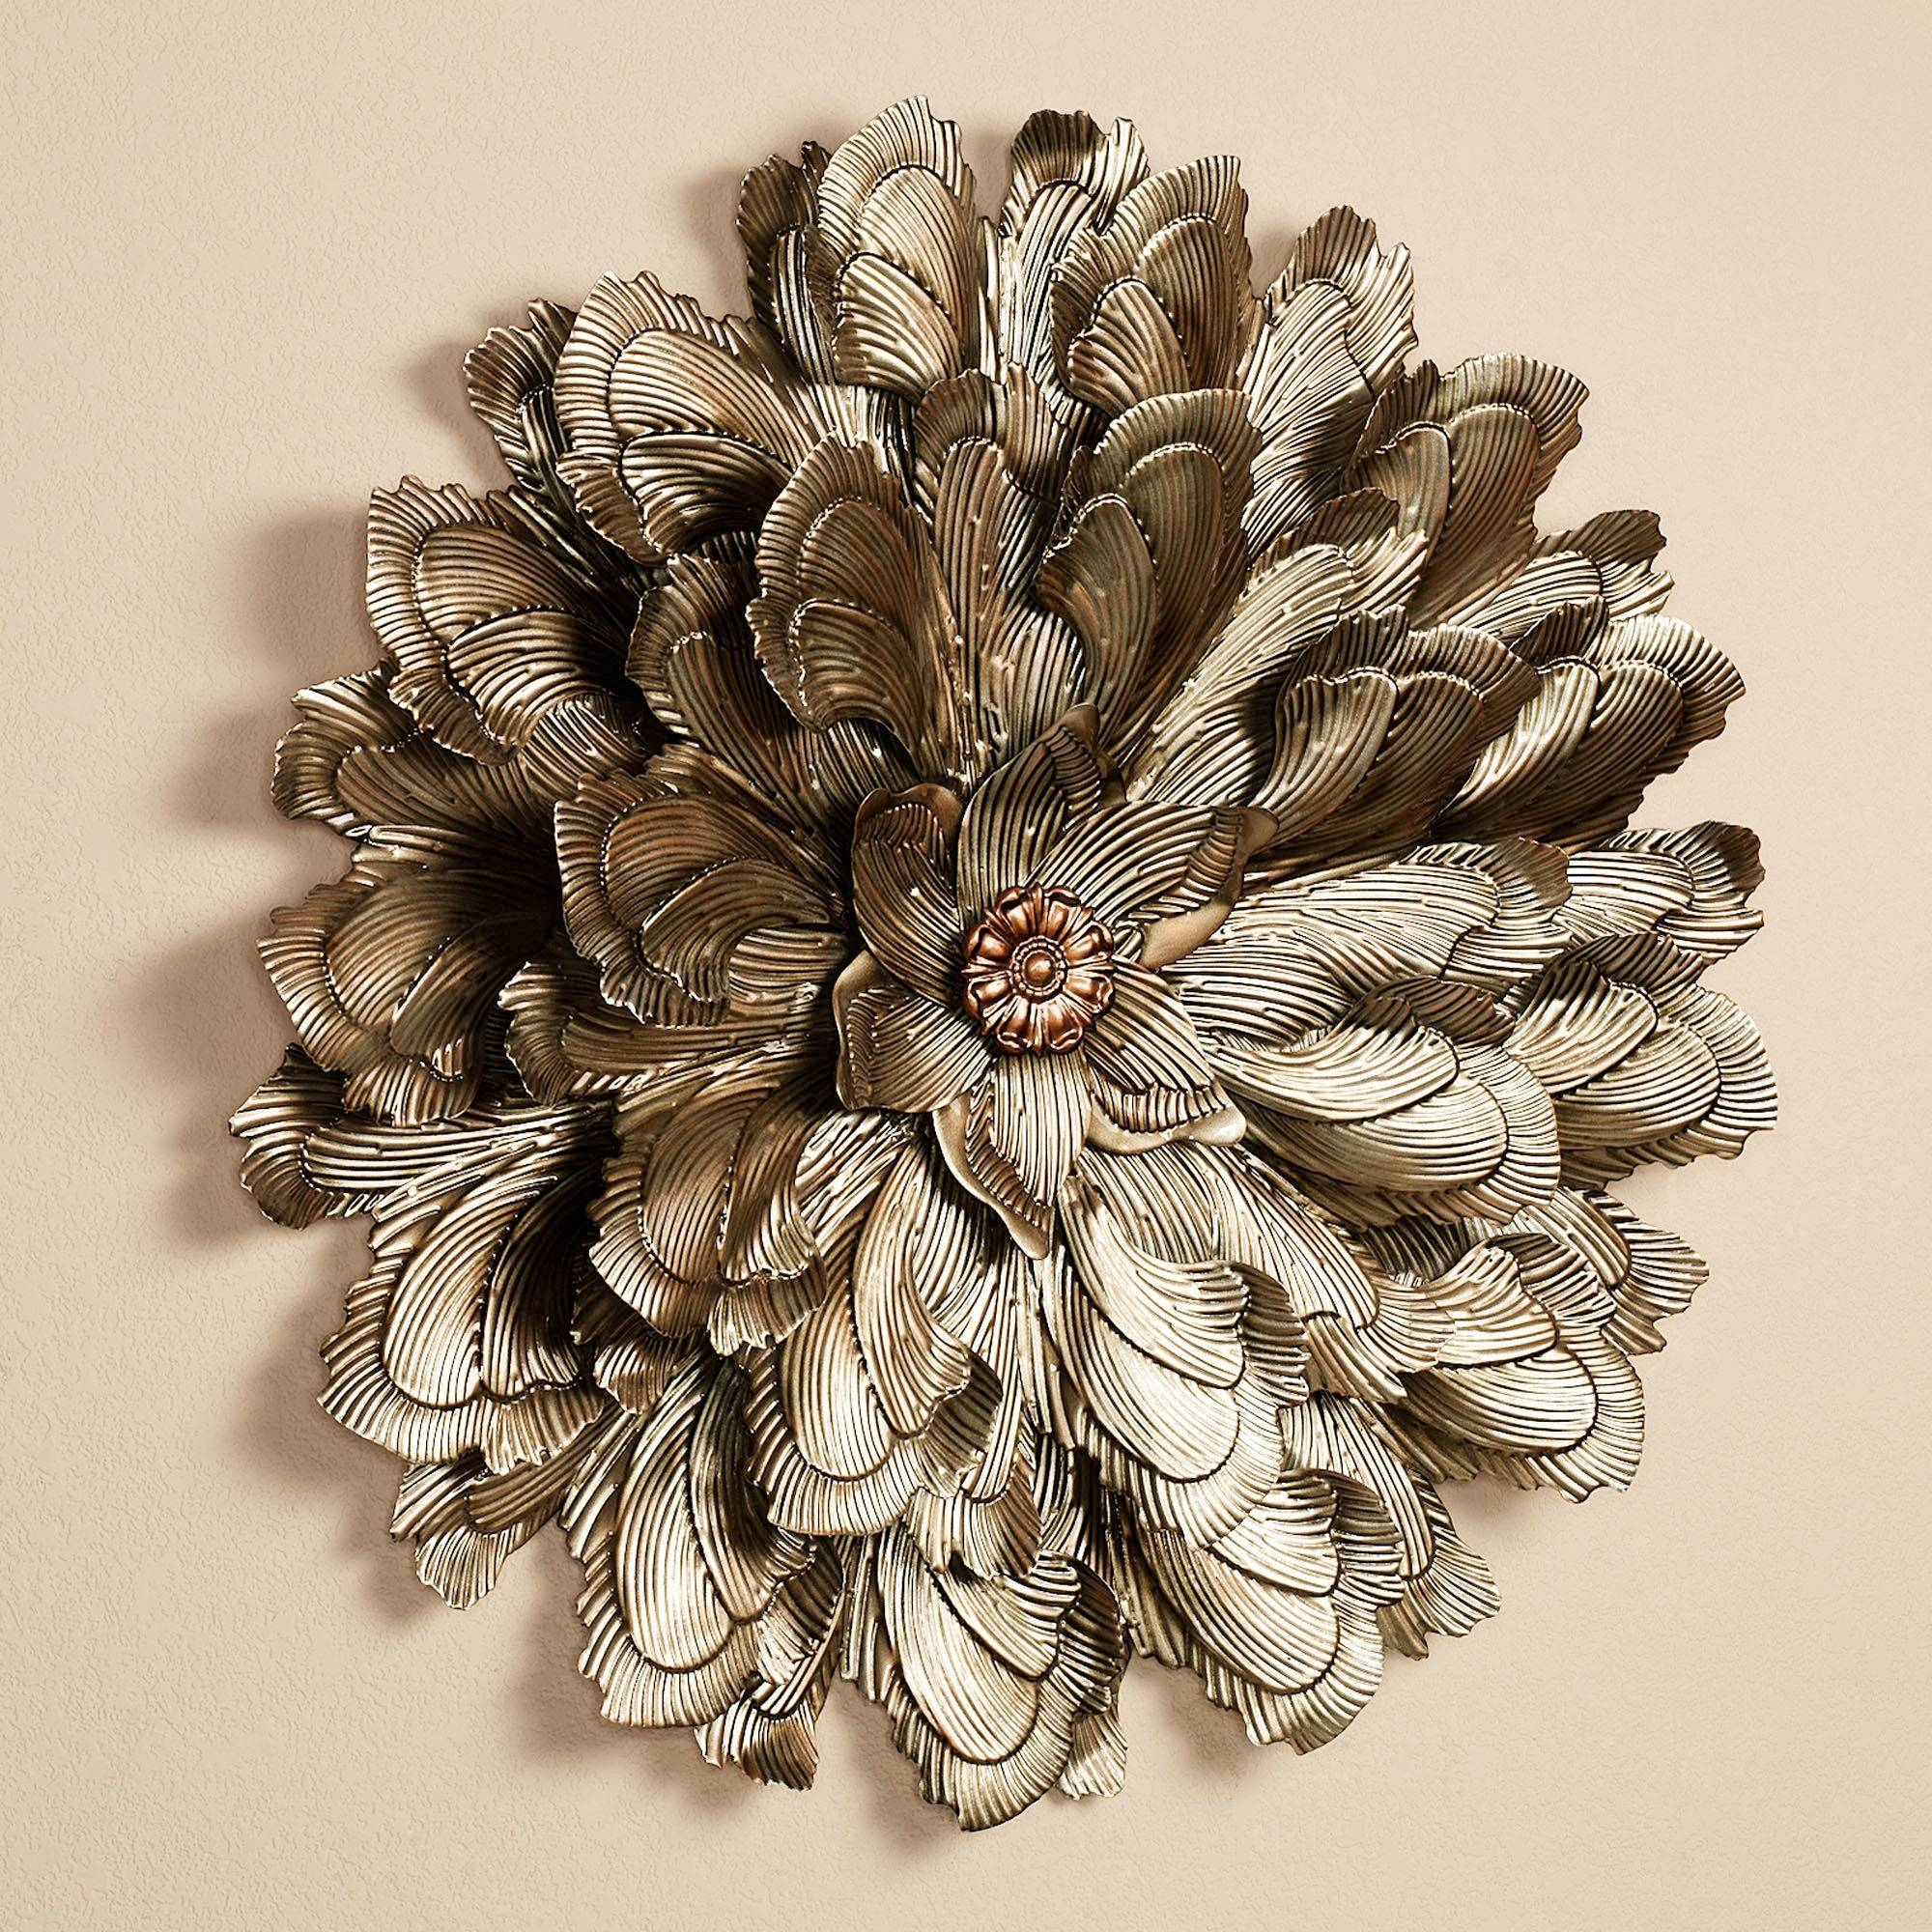 Delicate Flower Blossom Metal Wall Sculpture Throughout Most Current Gold Metal Wall Art (Gallery 4 of 20)